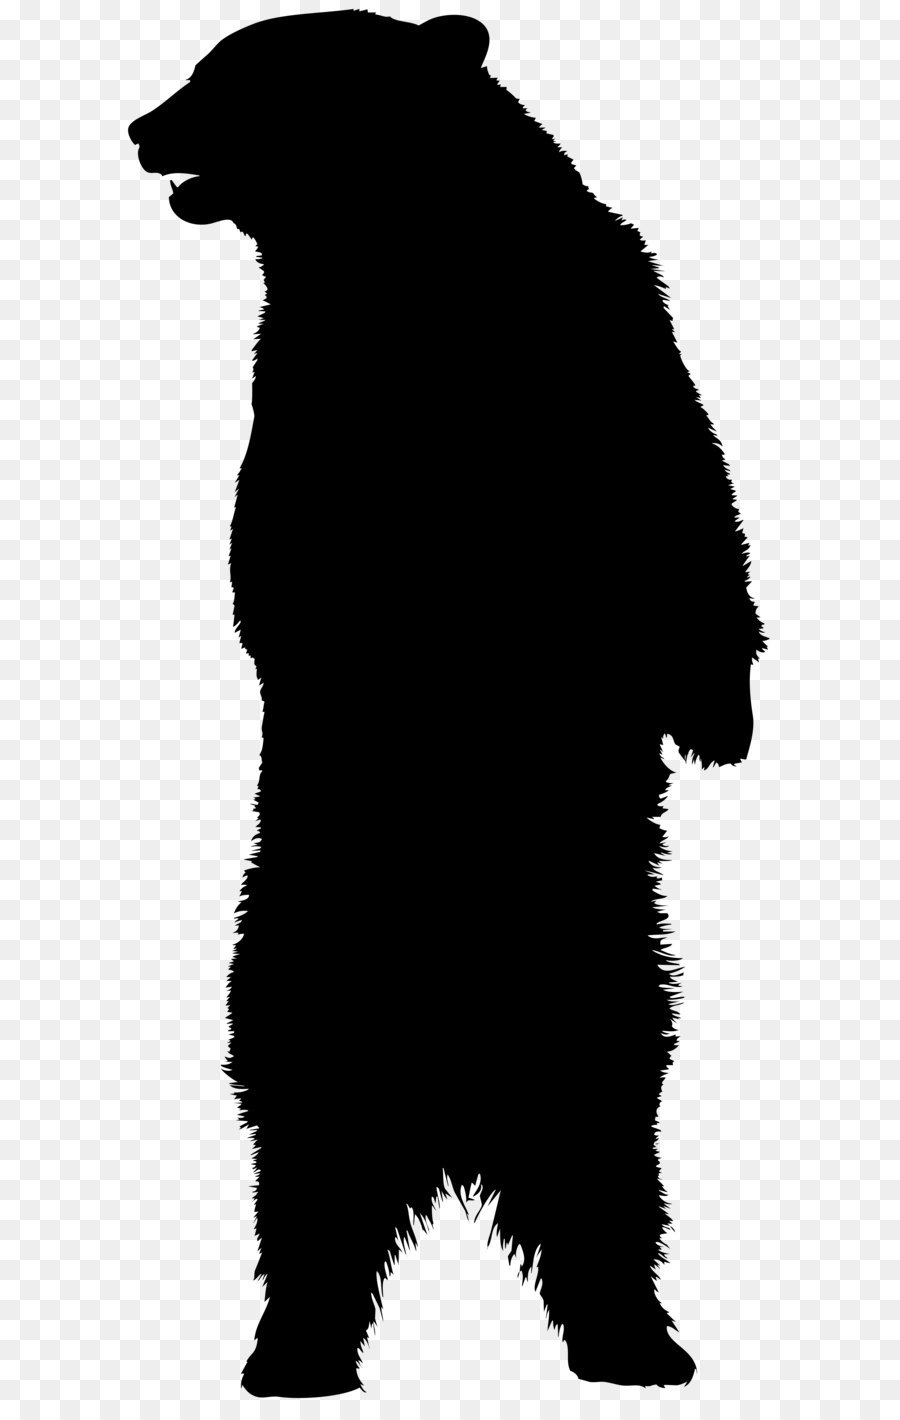 Grizzly Bear Silhouette Clip Art